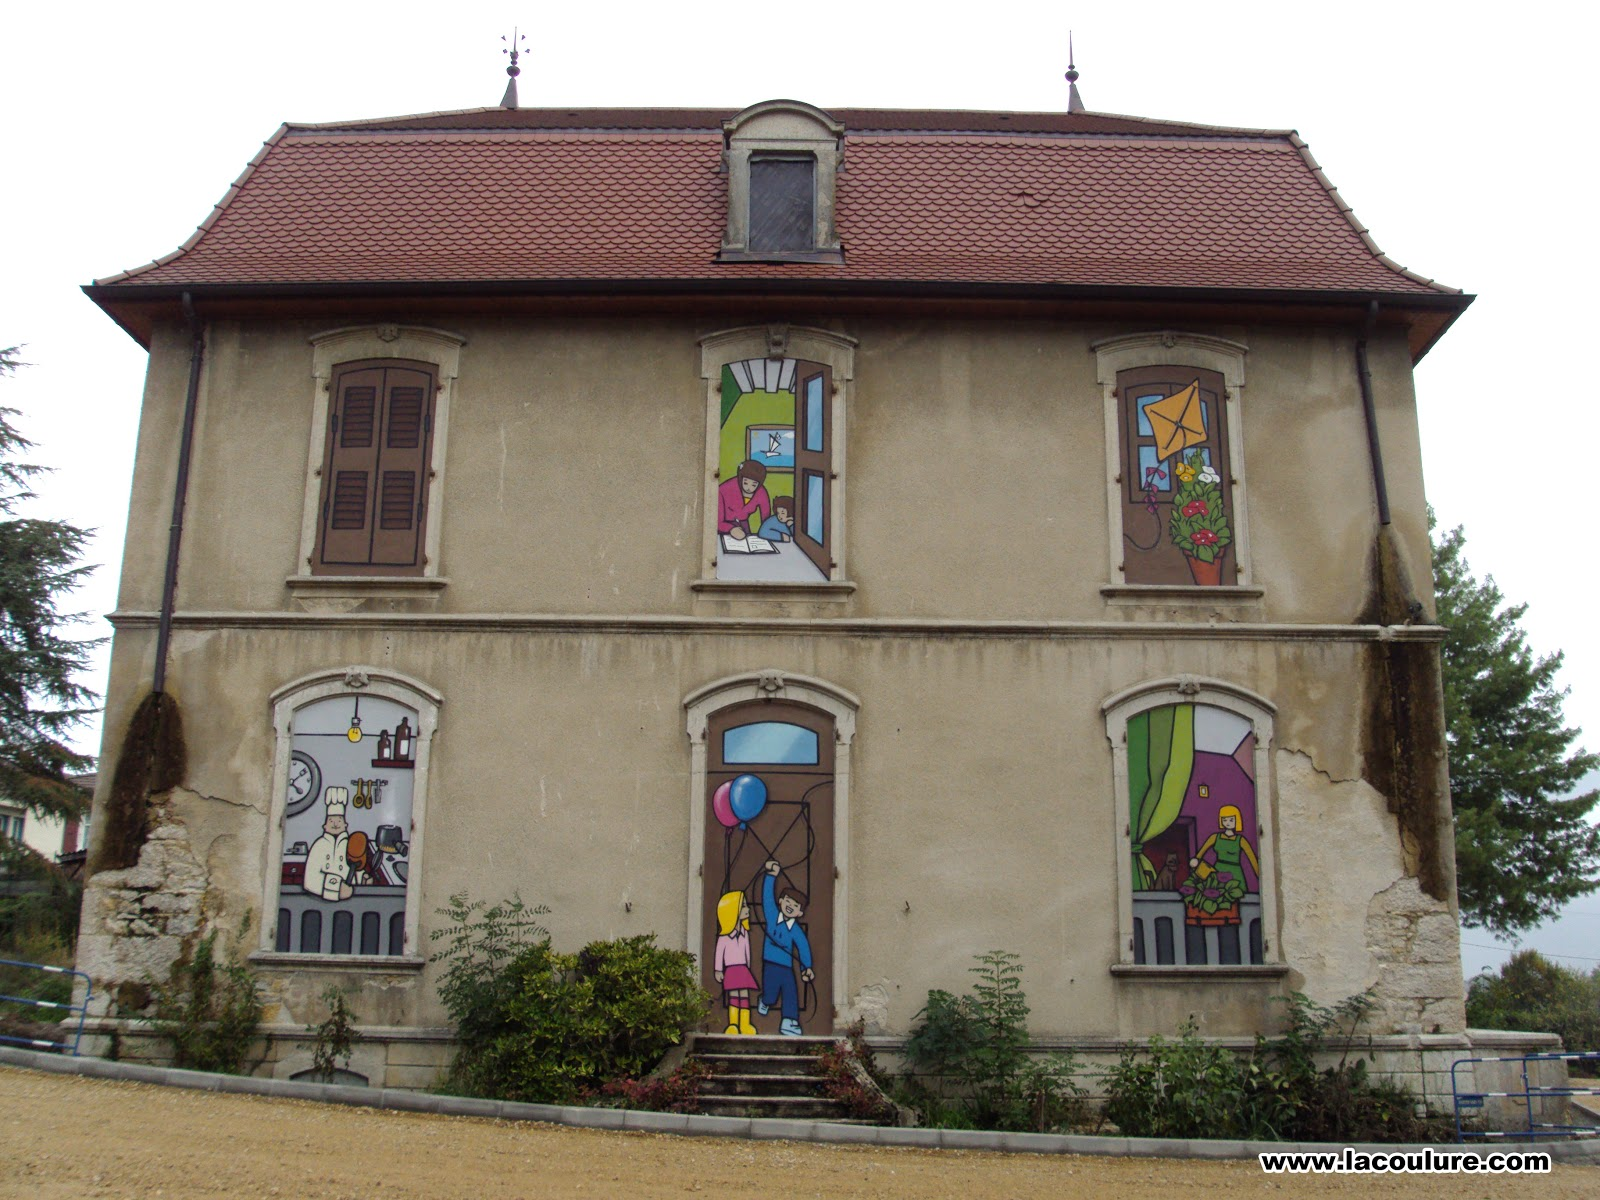 Collectif la coulure graffiti lyon trompe l 39 oeil fa on la - Trompe l oeil maison ...